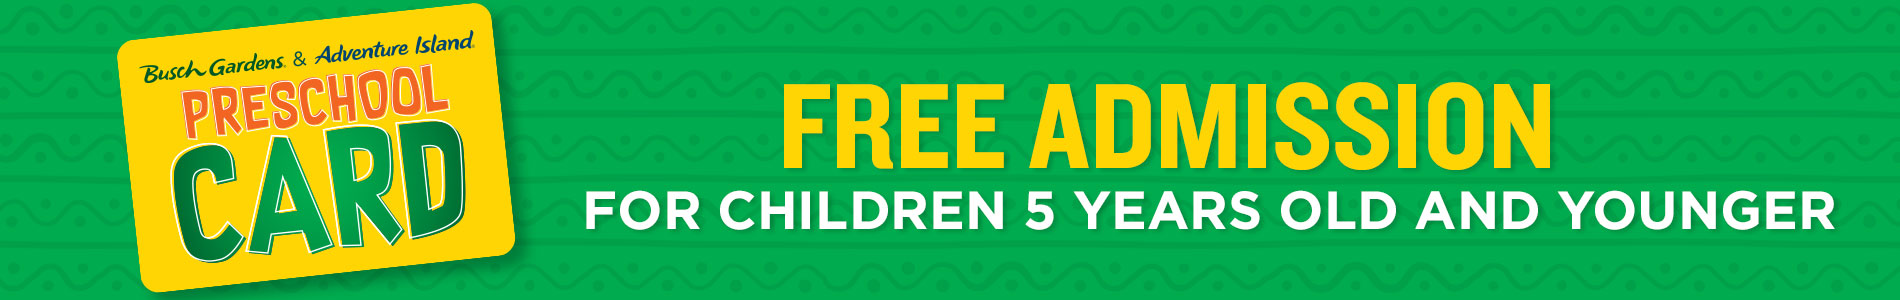 Free Admission for children 5 years and younger with a preschool card